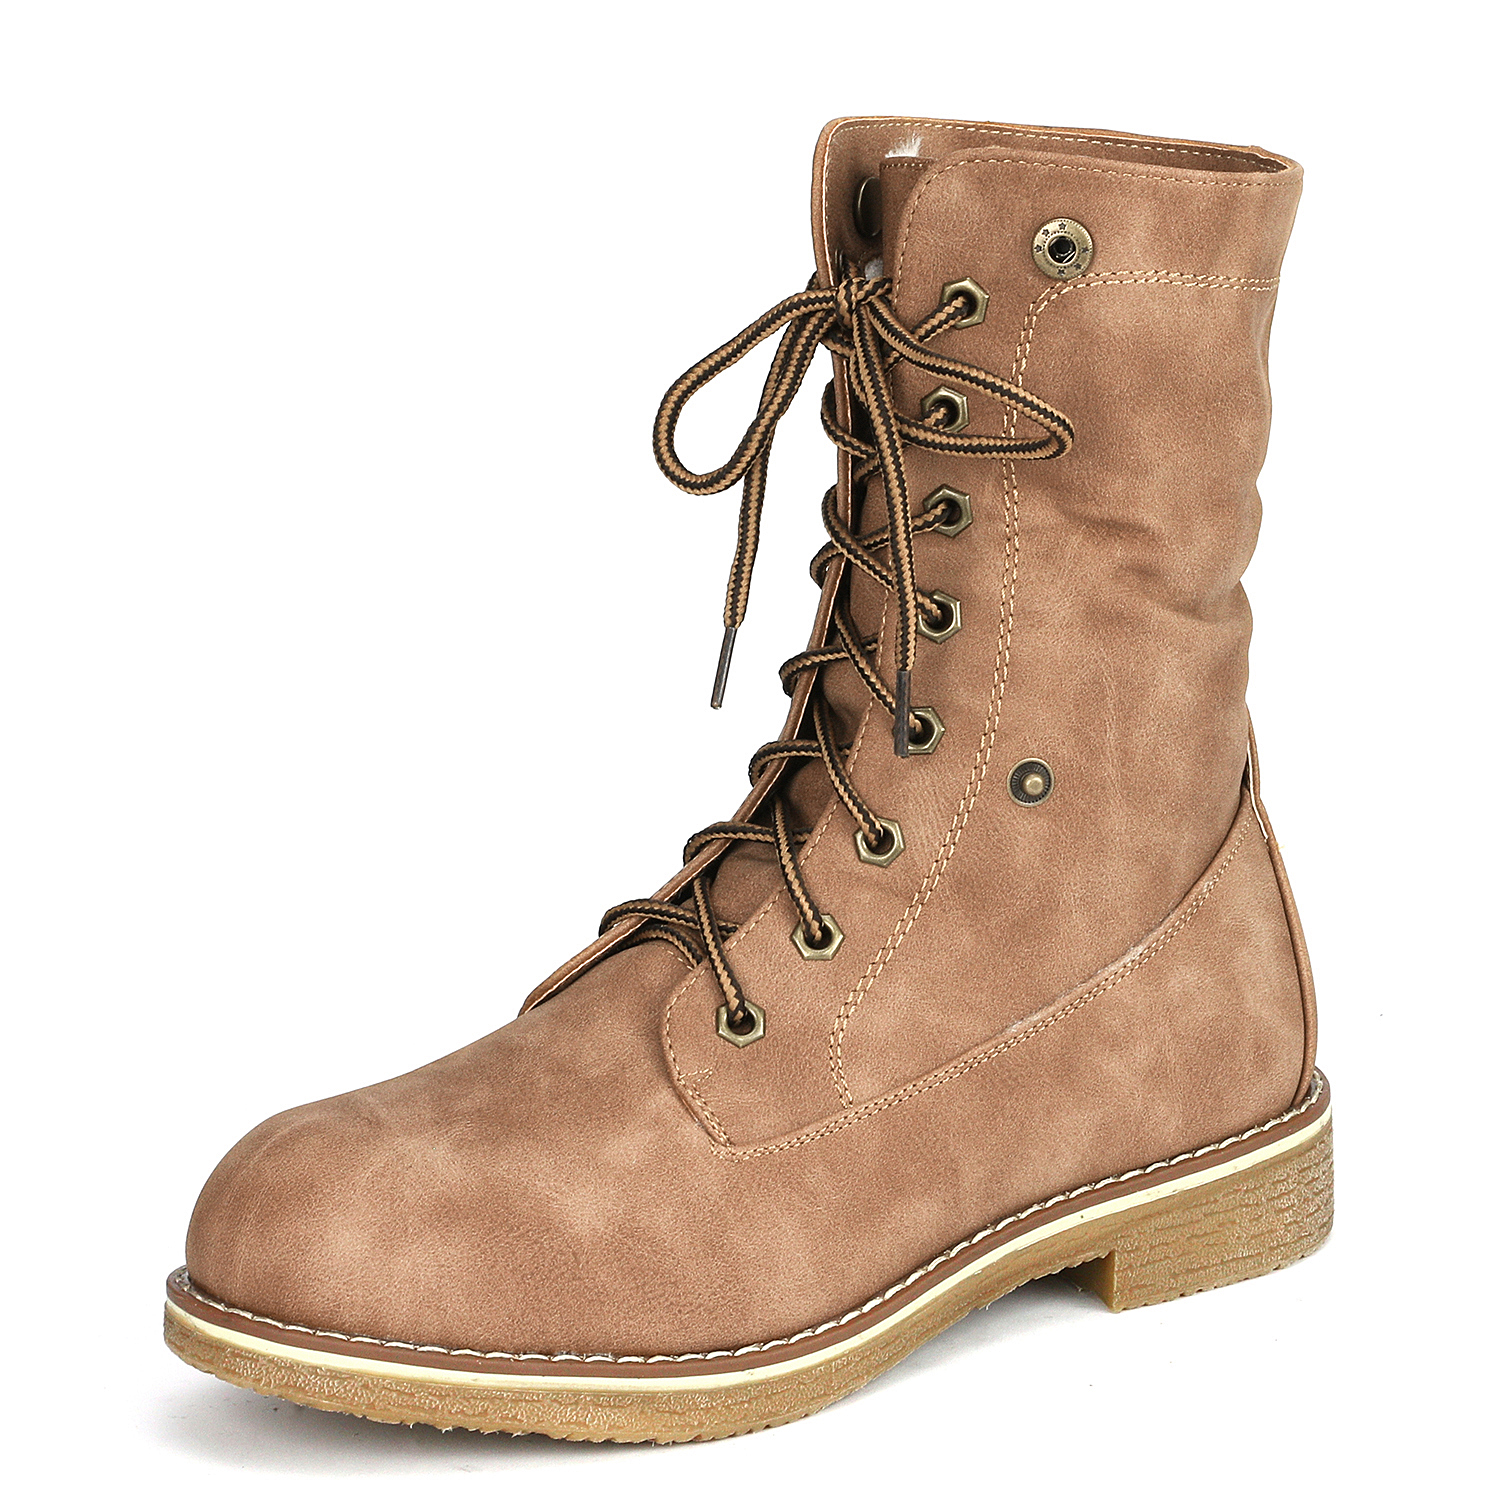 45722ce91759 DREAM PAIRS Women MONTREAL Lace Up PU Mid Calf Winter Snow Ankle ...